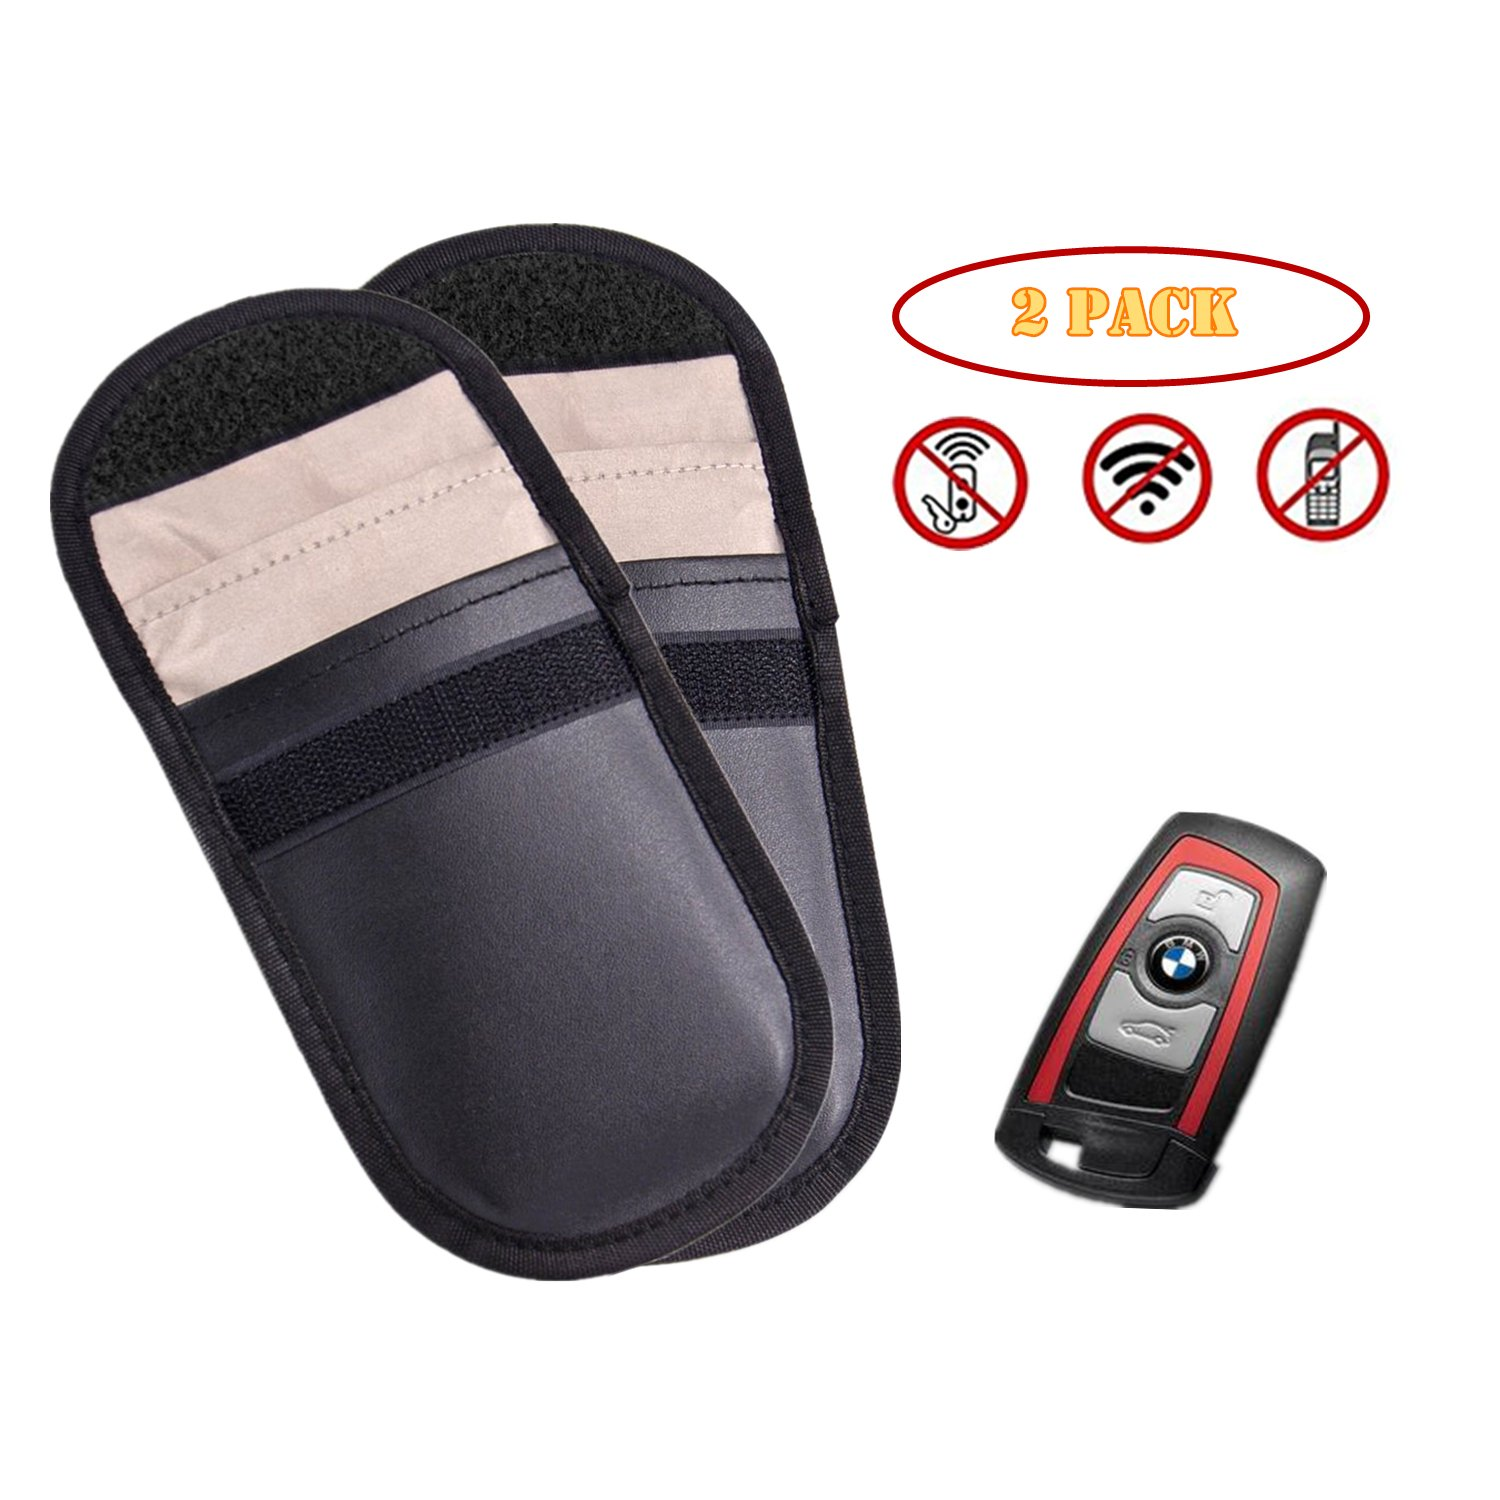 2* Car Key RFID Signal Bloking Case, TAIKUU Singal Blocker Pouch Bag for Keyless Entry Fob Guard, Antitheft Lock Device, Healthy Cell Phone Privacy Protection Security WiFi/ GSM/ LTE/ NFC/ RF Blocker